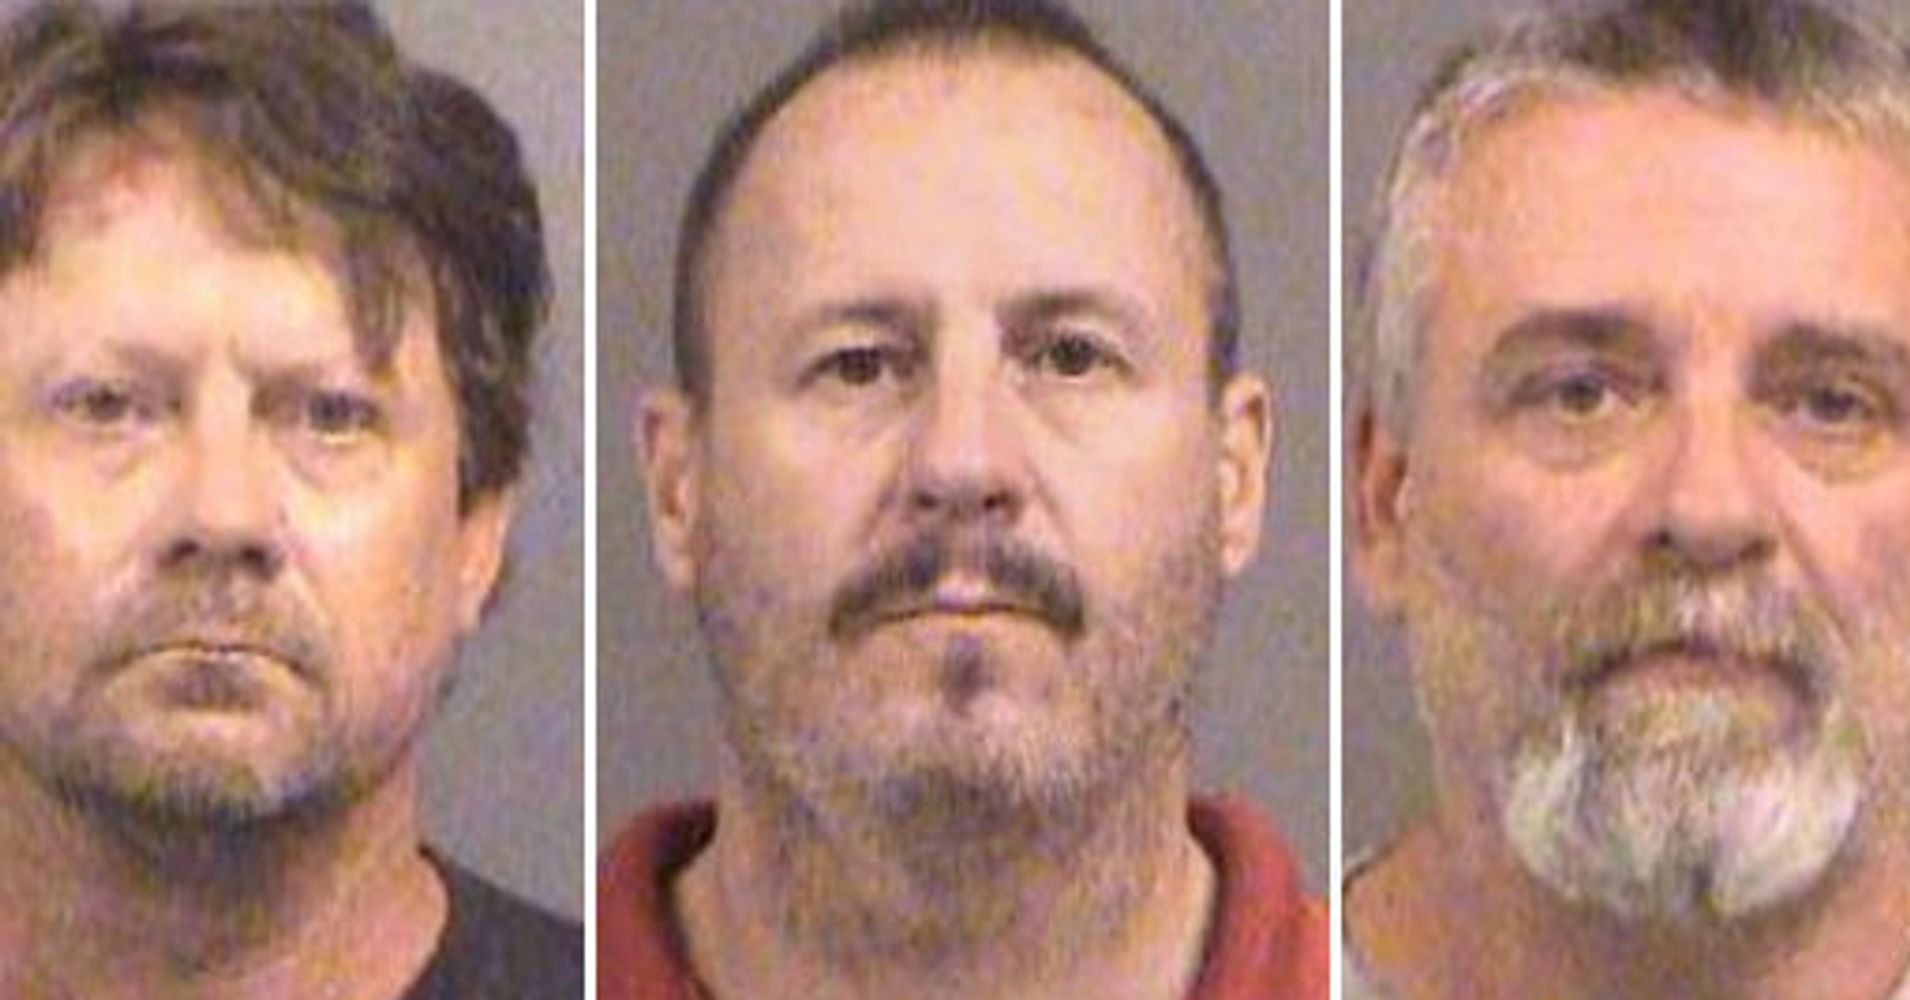 White Militiamen Charged In Plot To Massacre Muslims Argue They're Just 'Knuckleheads' | HuffPost